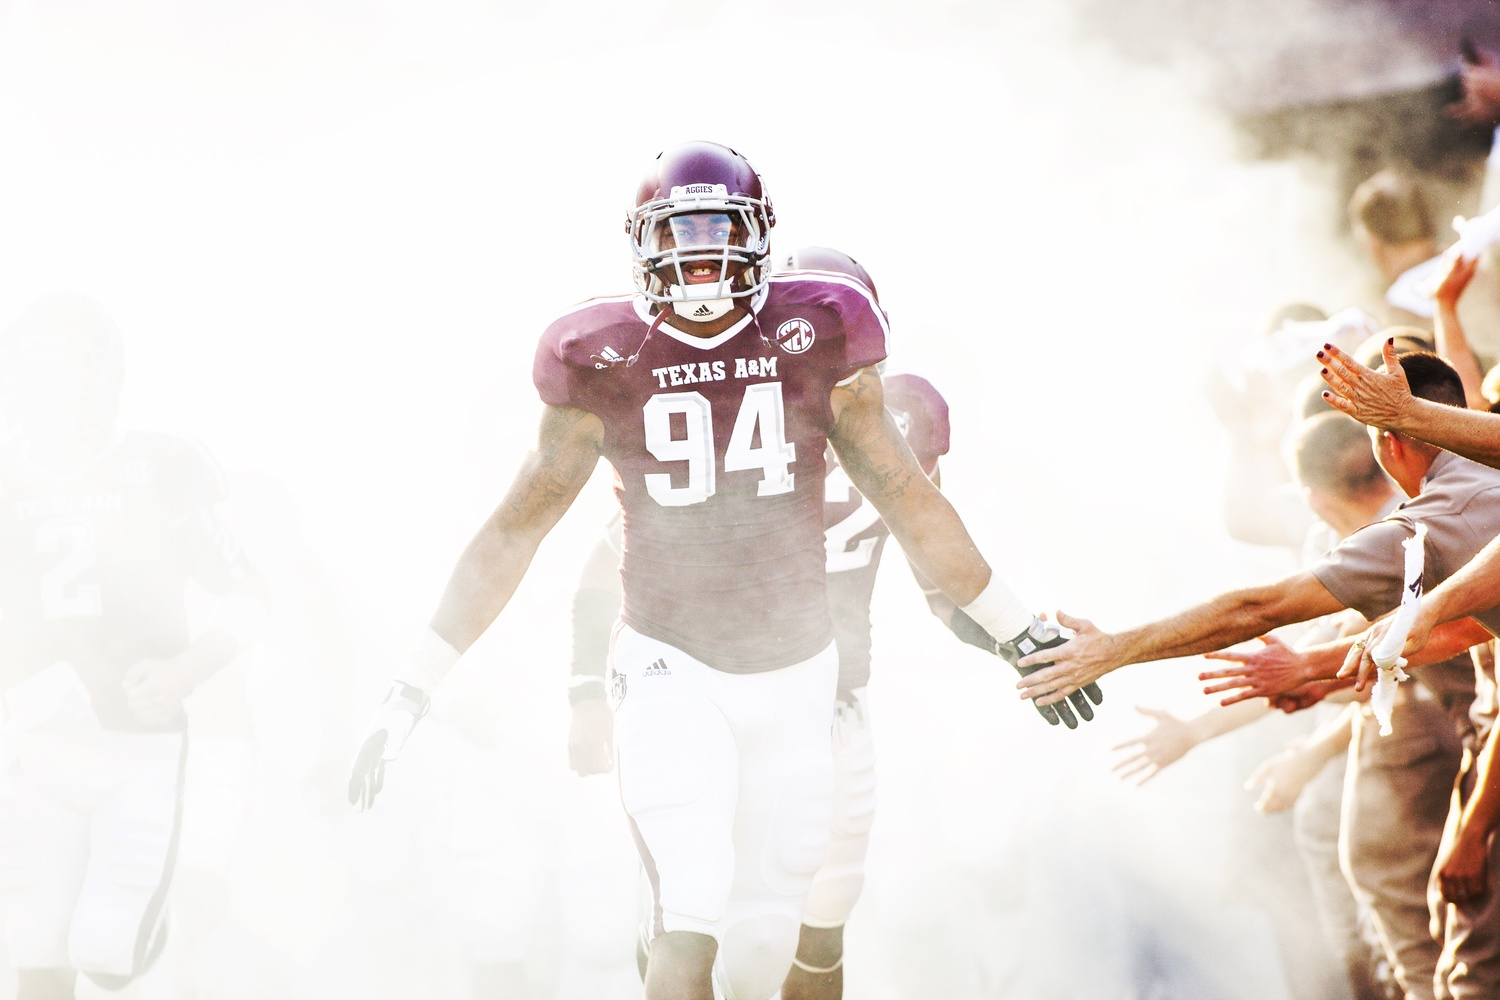 sports photography tips aggie football Damontre Moore